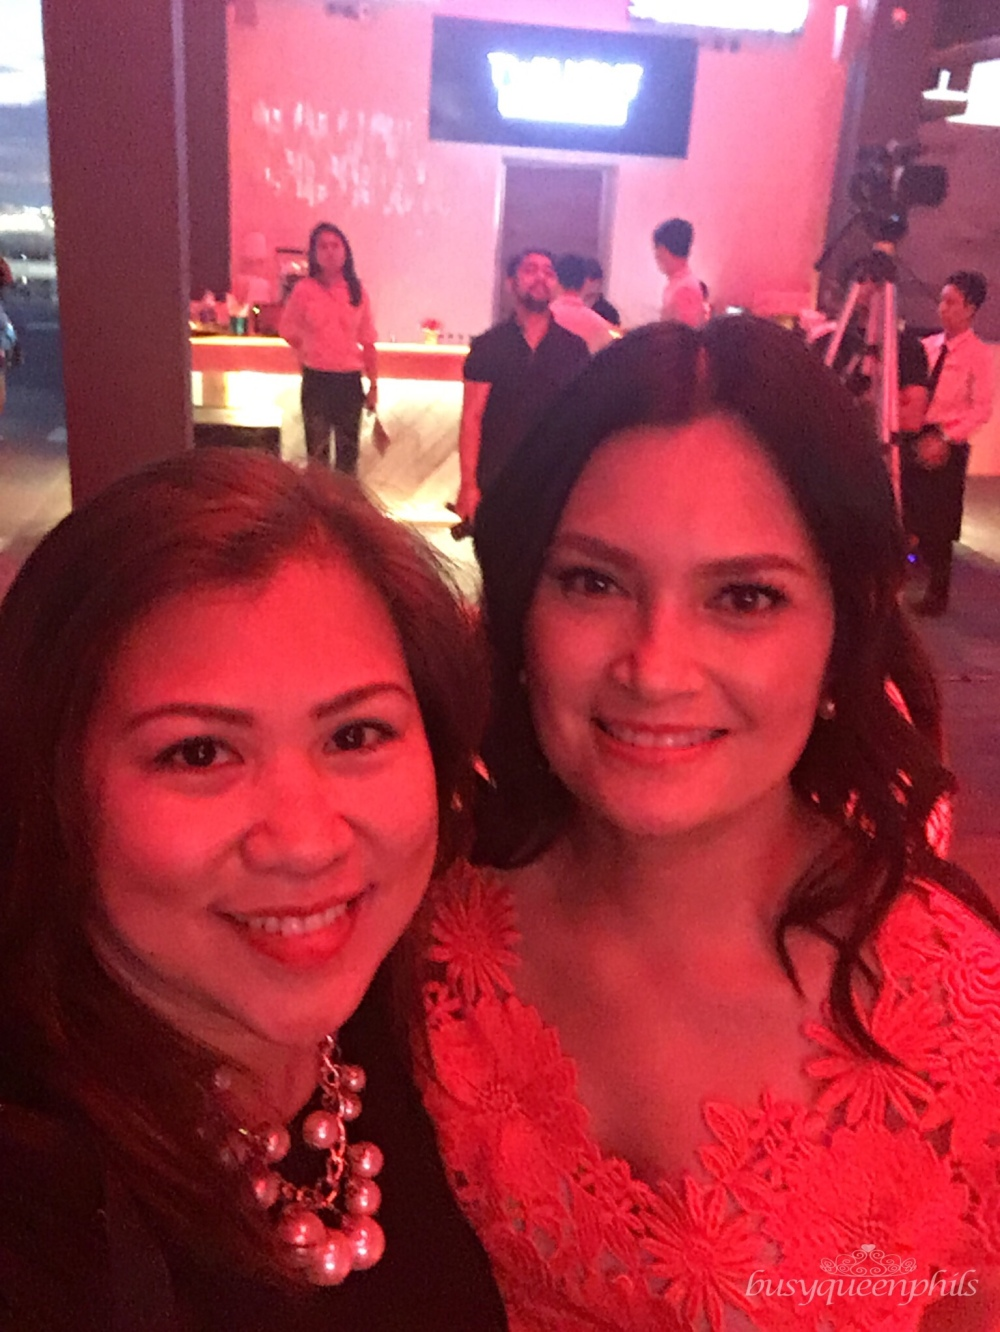 Busyqueenphils with Ms. Daphne Oseña-Paez at AirAsia RedTalks launch